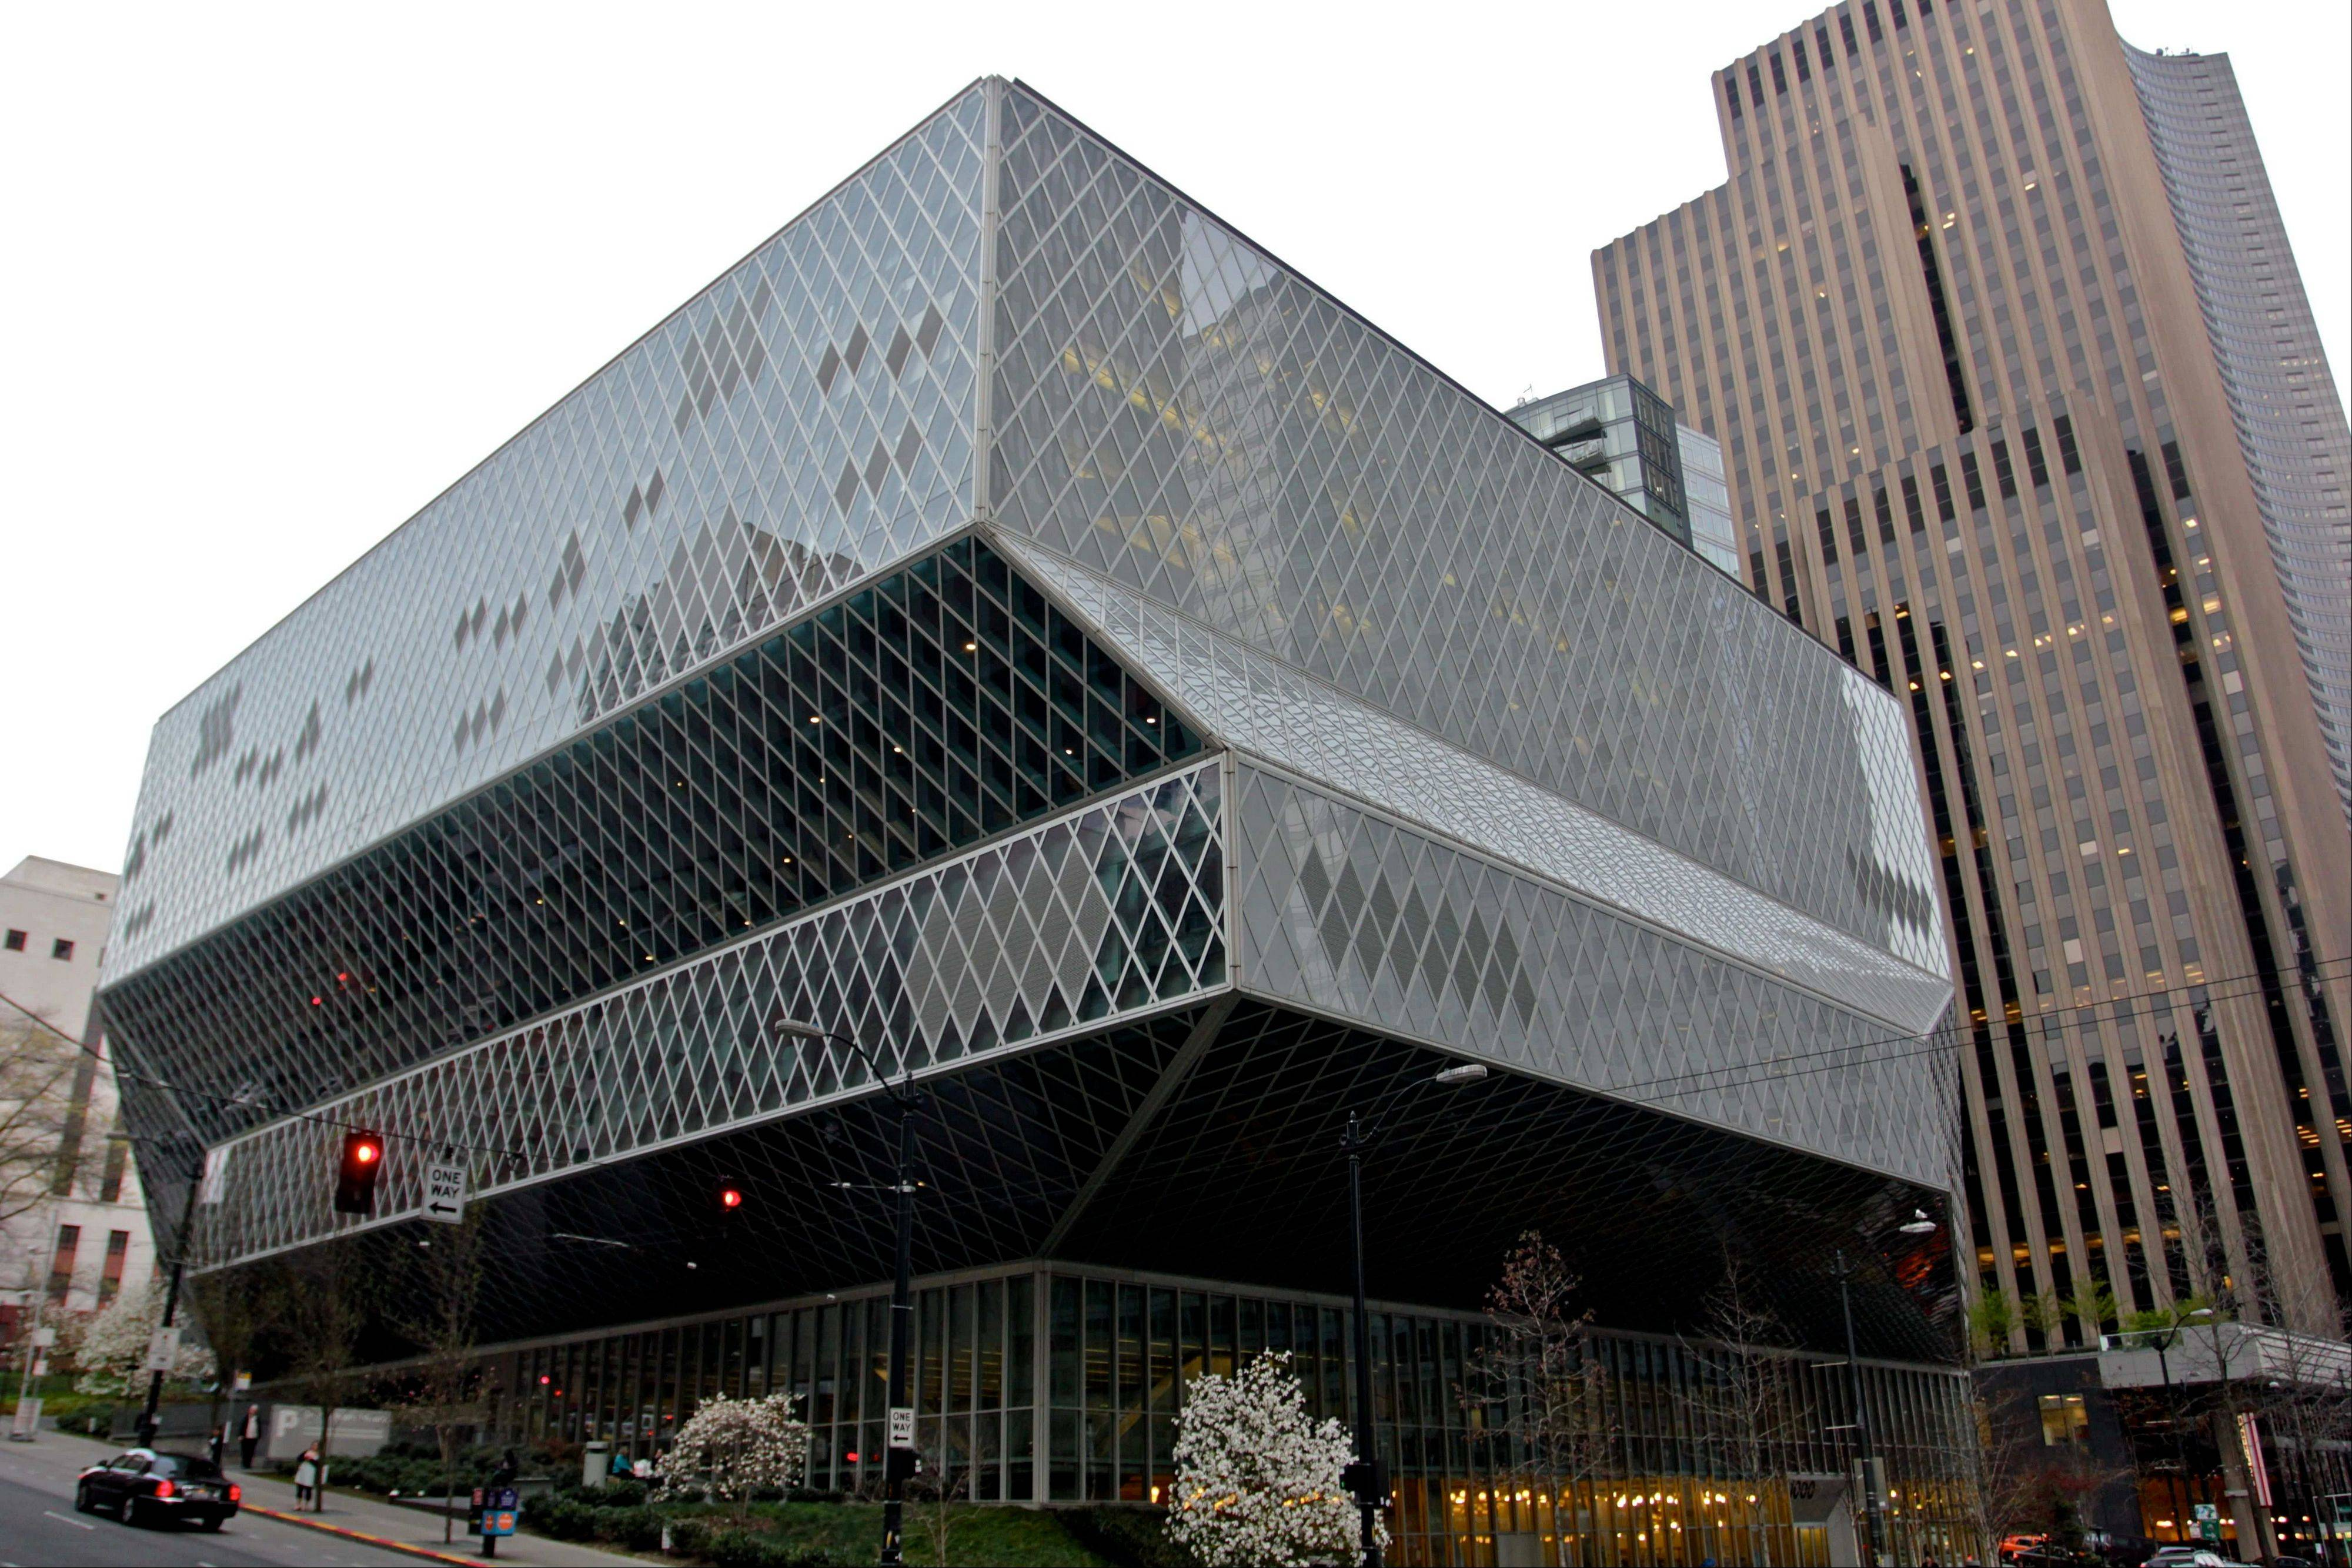 The exterior of the Seattle Central Library in downtown Seattle.